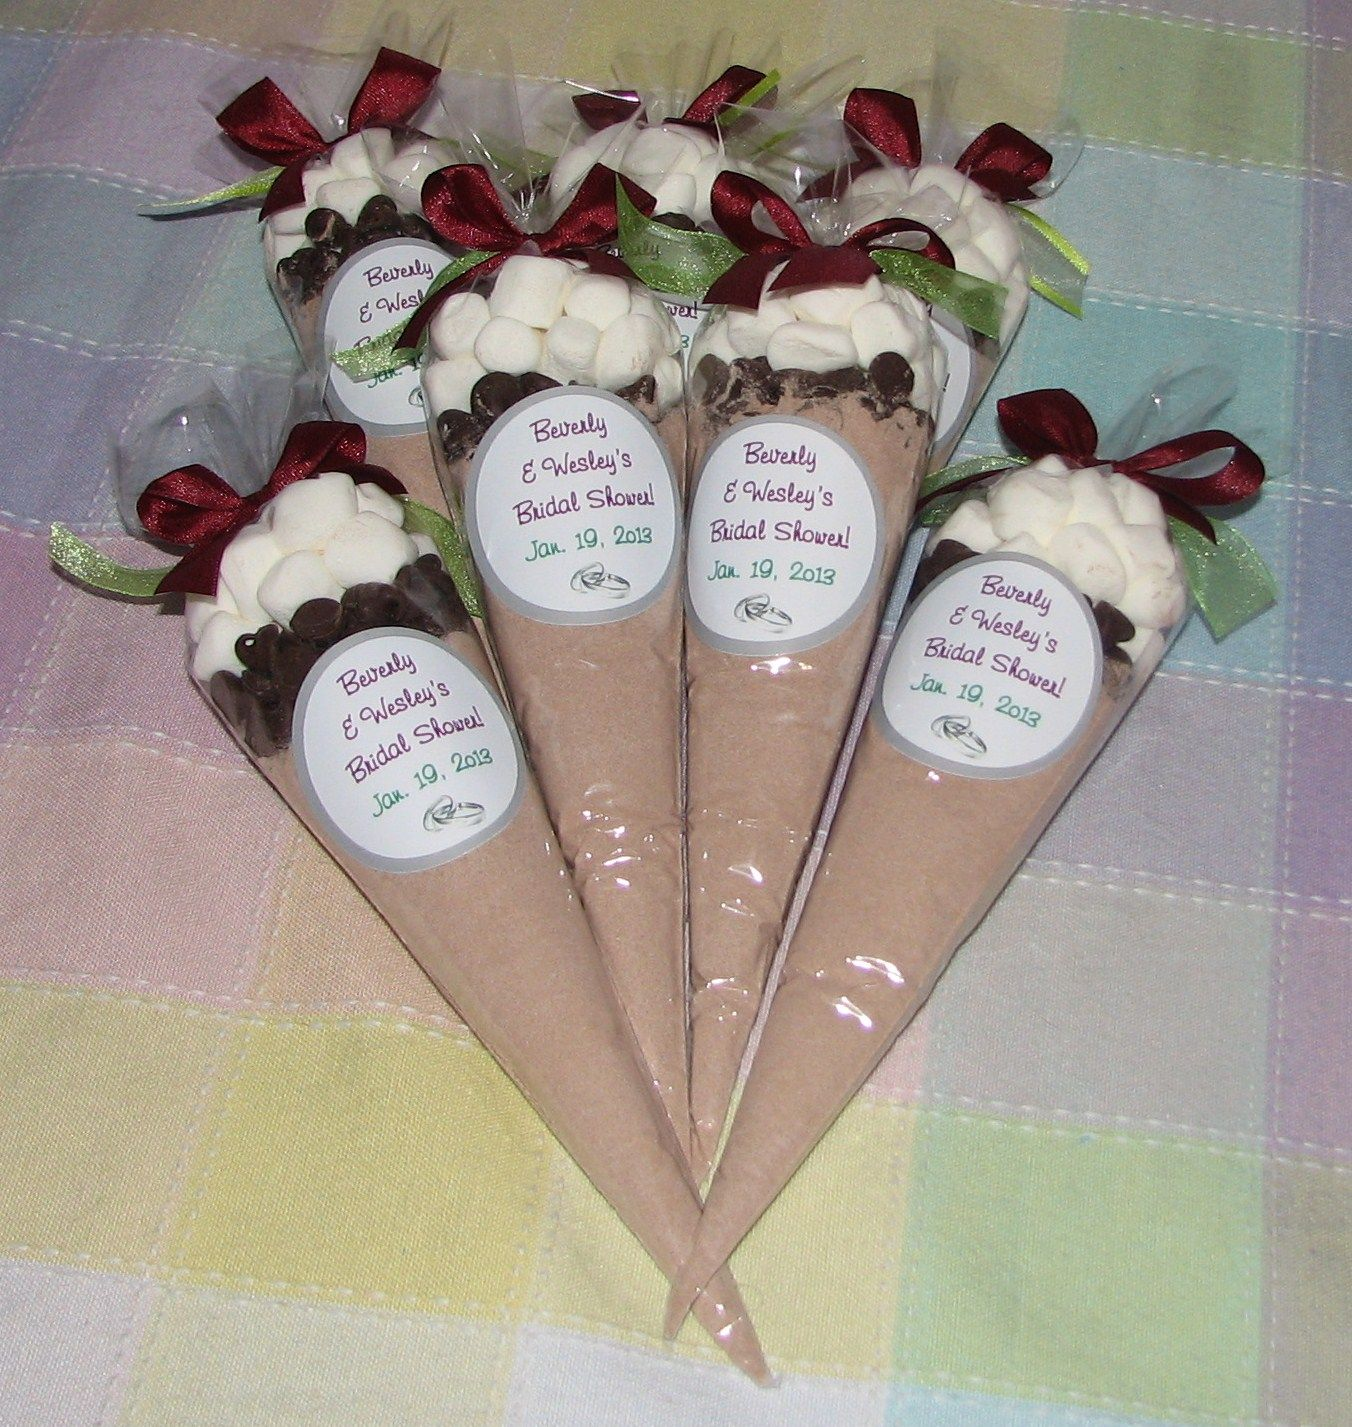 Bridal shower party supplies - Bridal Shower Favors Ideas Personalized Bridal Shower Hot Cocoa Cone Favors